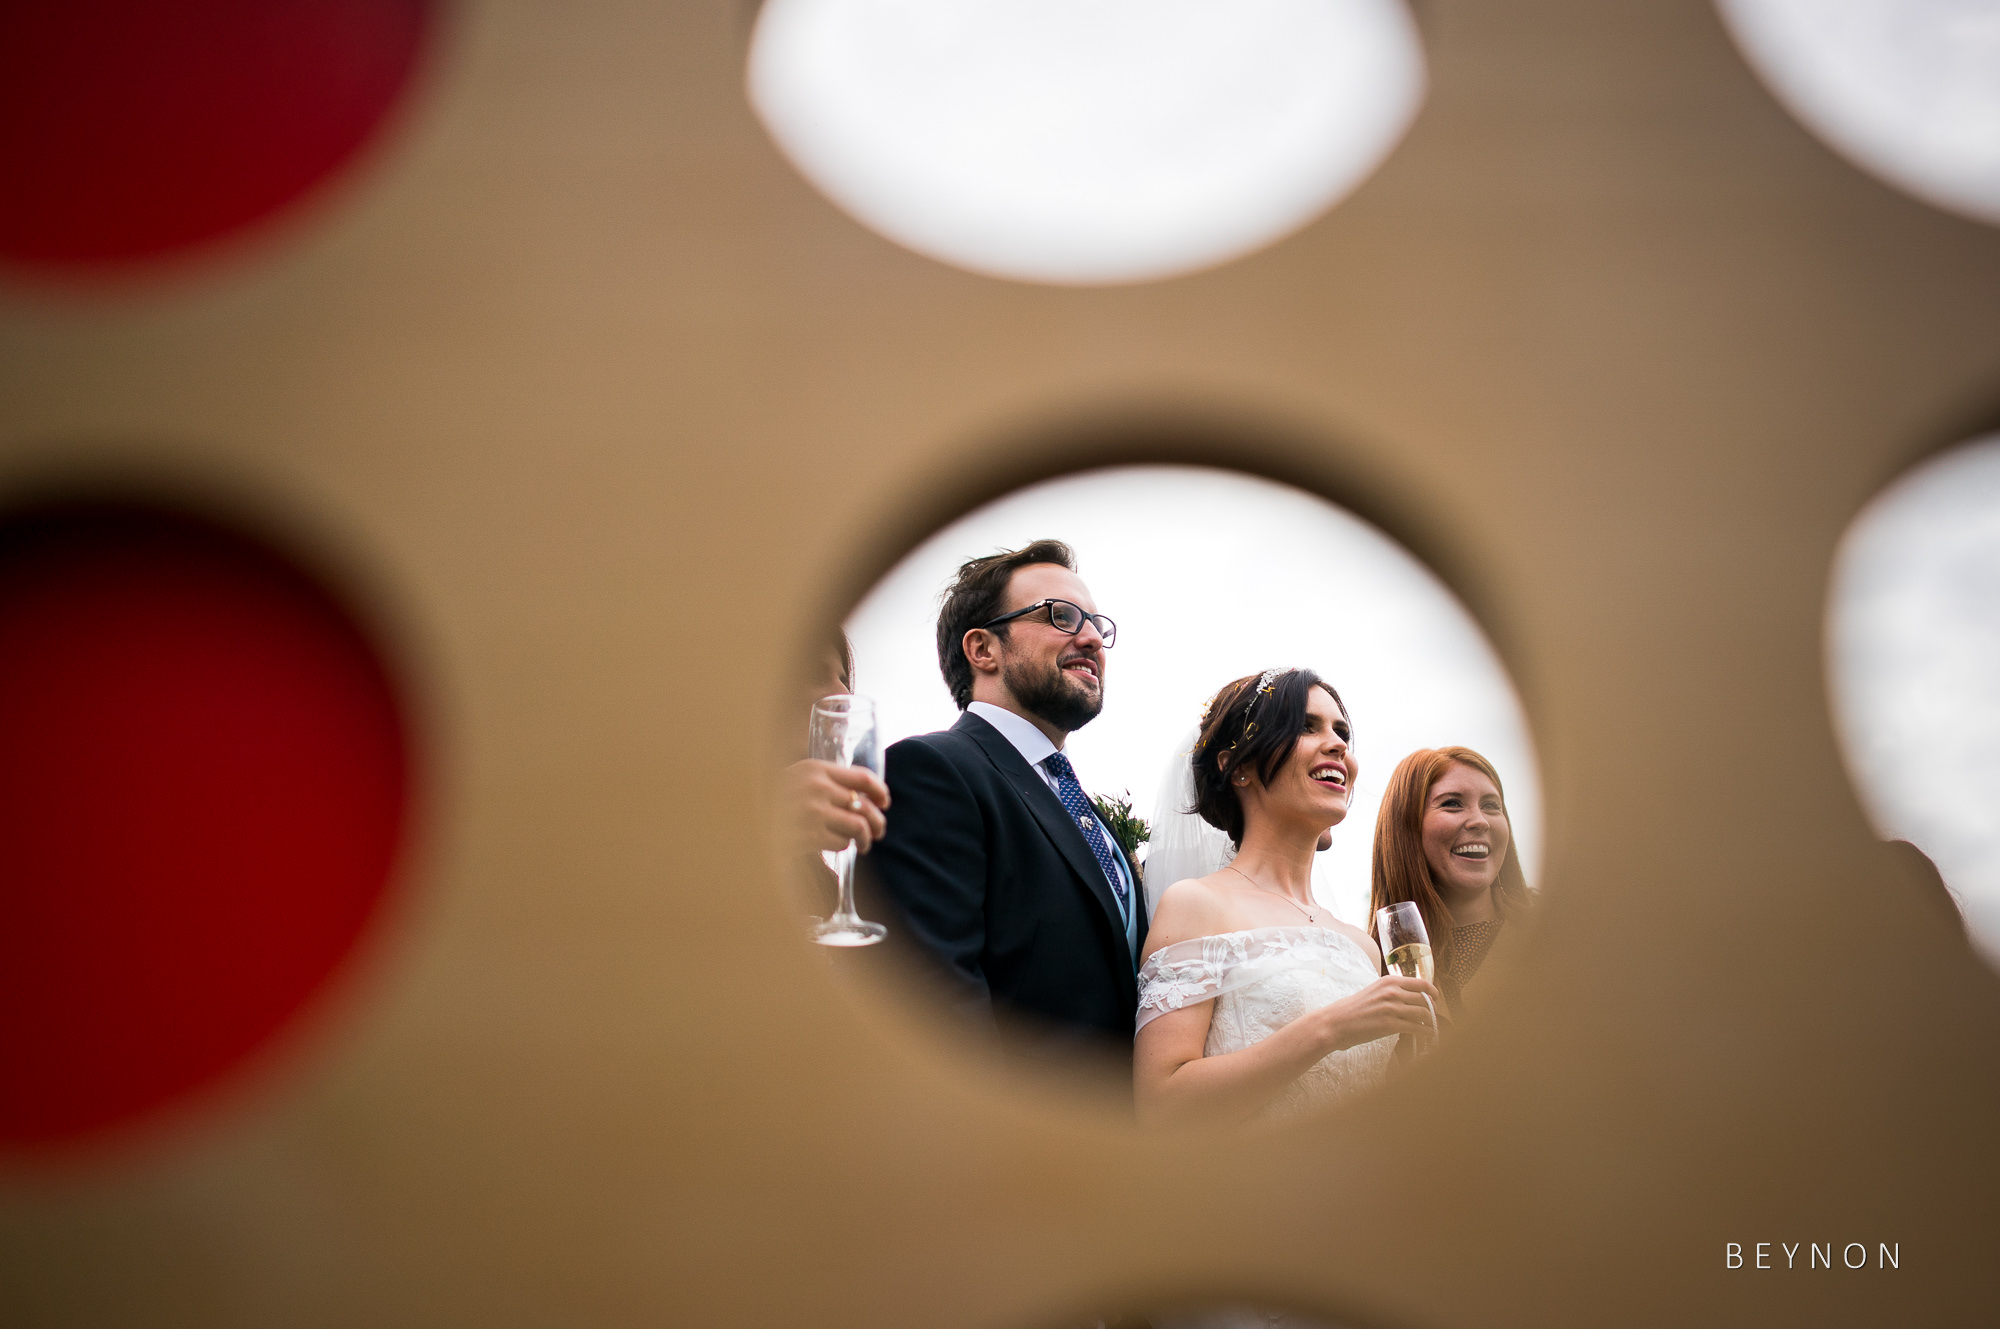 Creative candid photograph of bride and groom